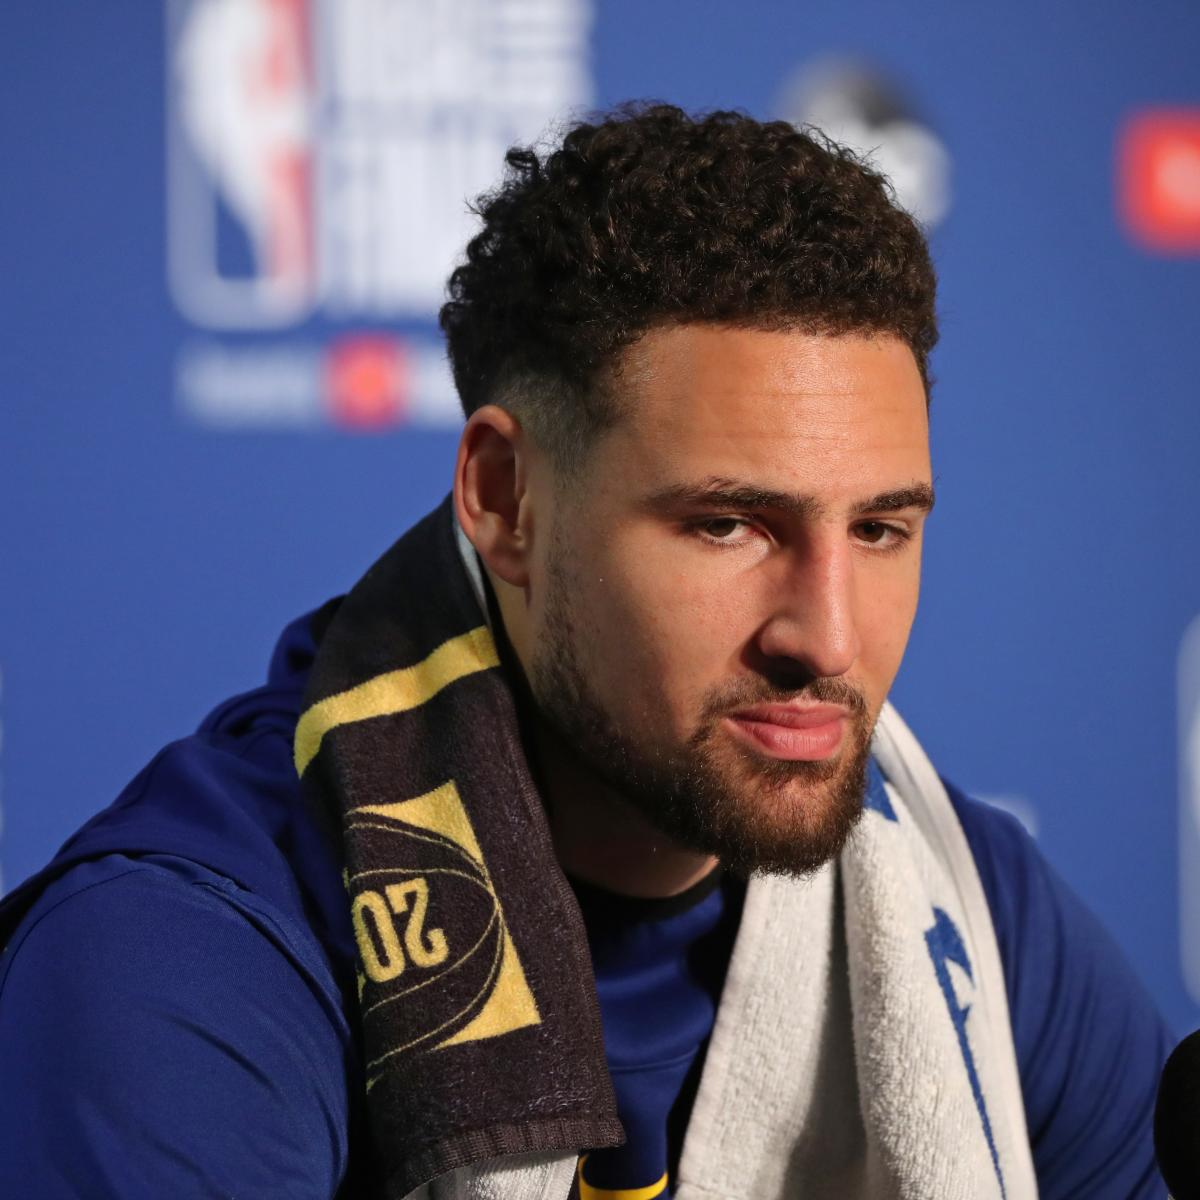 Warriors Full Game Highlights Game 3: Report: Warriors 'Prefer' Klay Thompson Sits Out Game 3